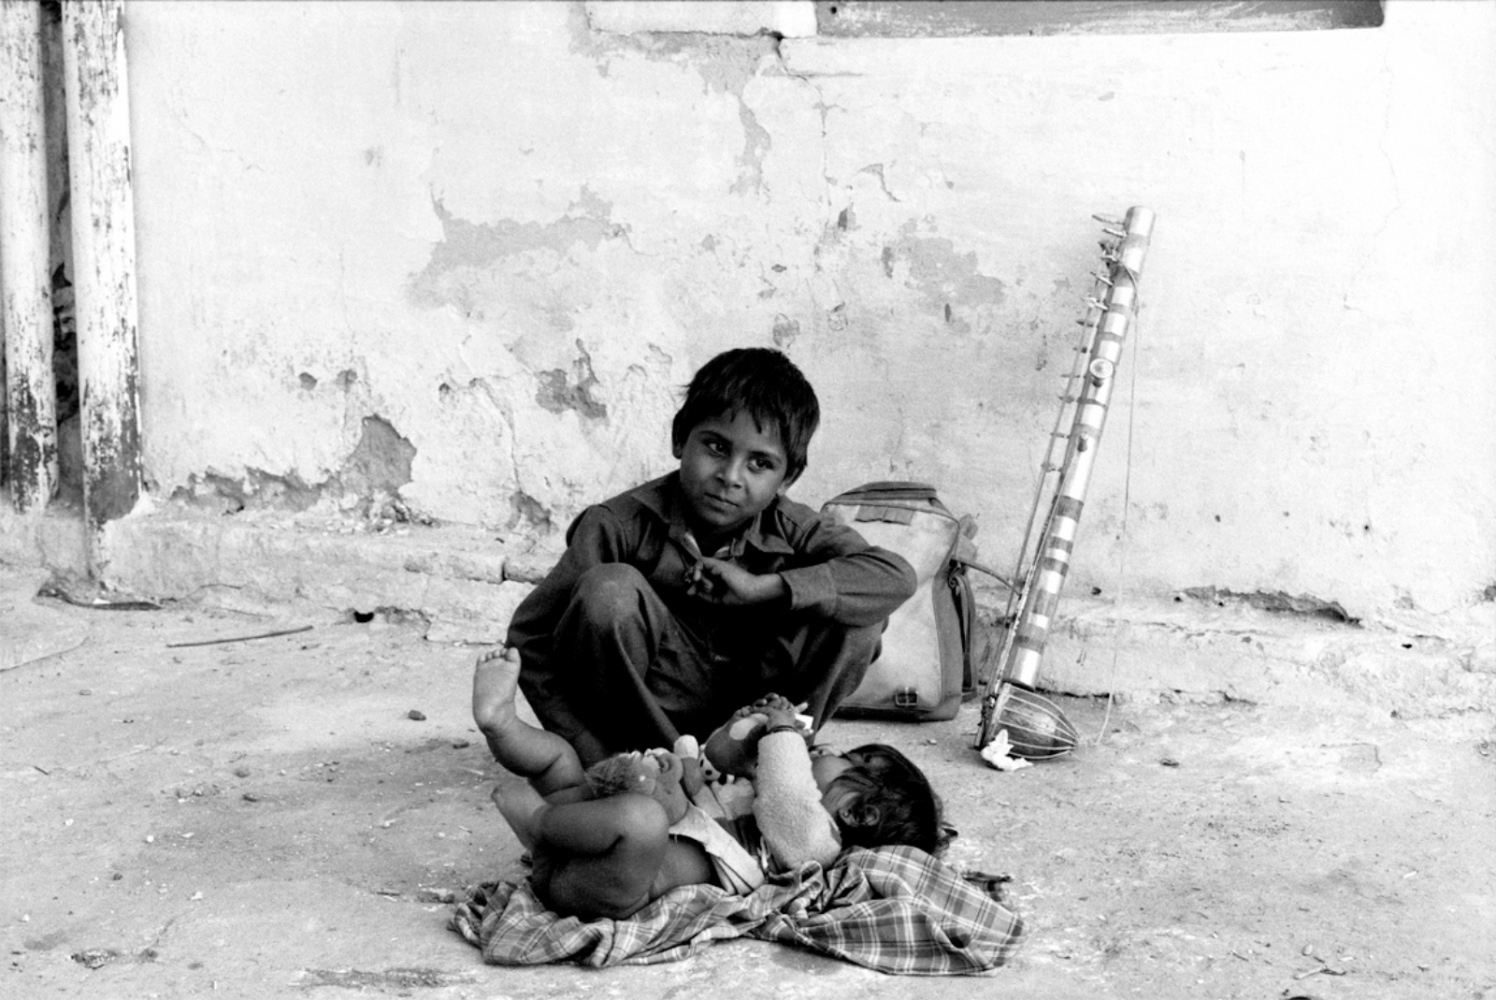 Boy, Baby and Music, Pushkar, India, November 2003